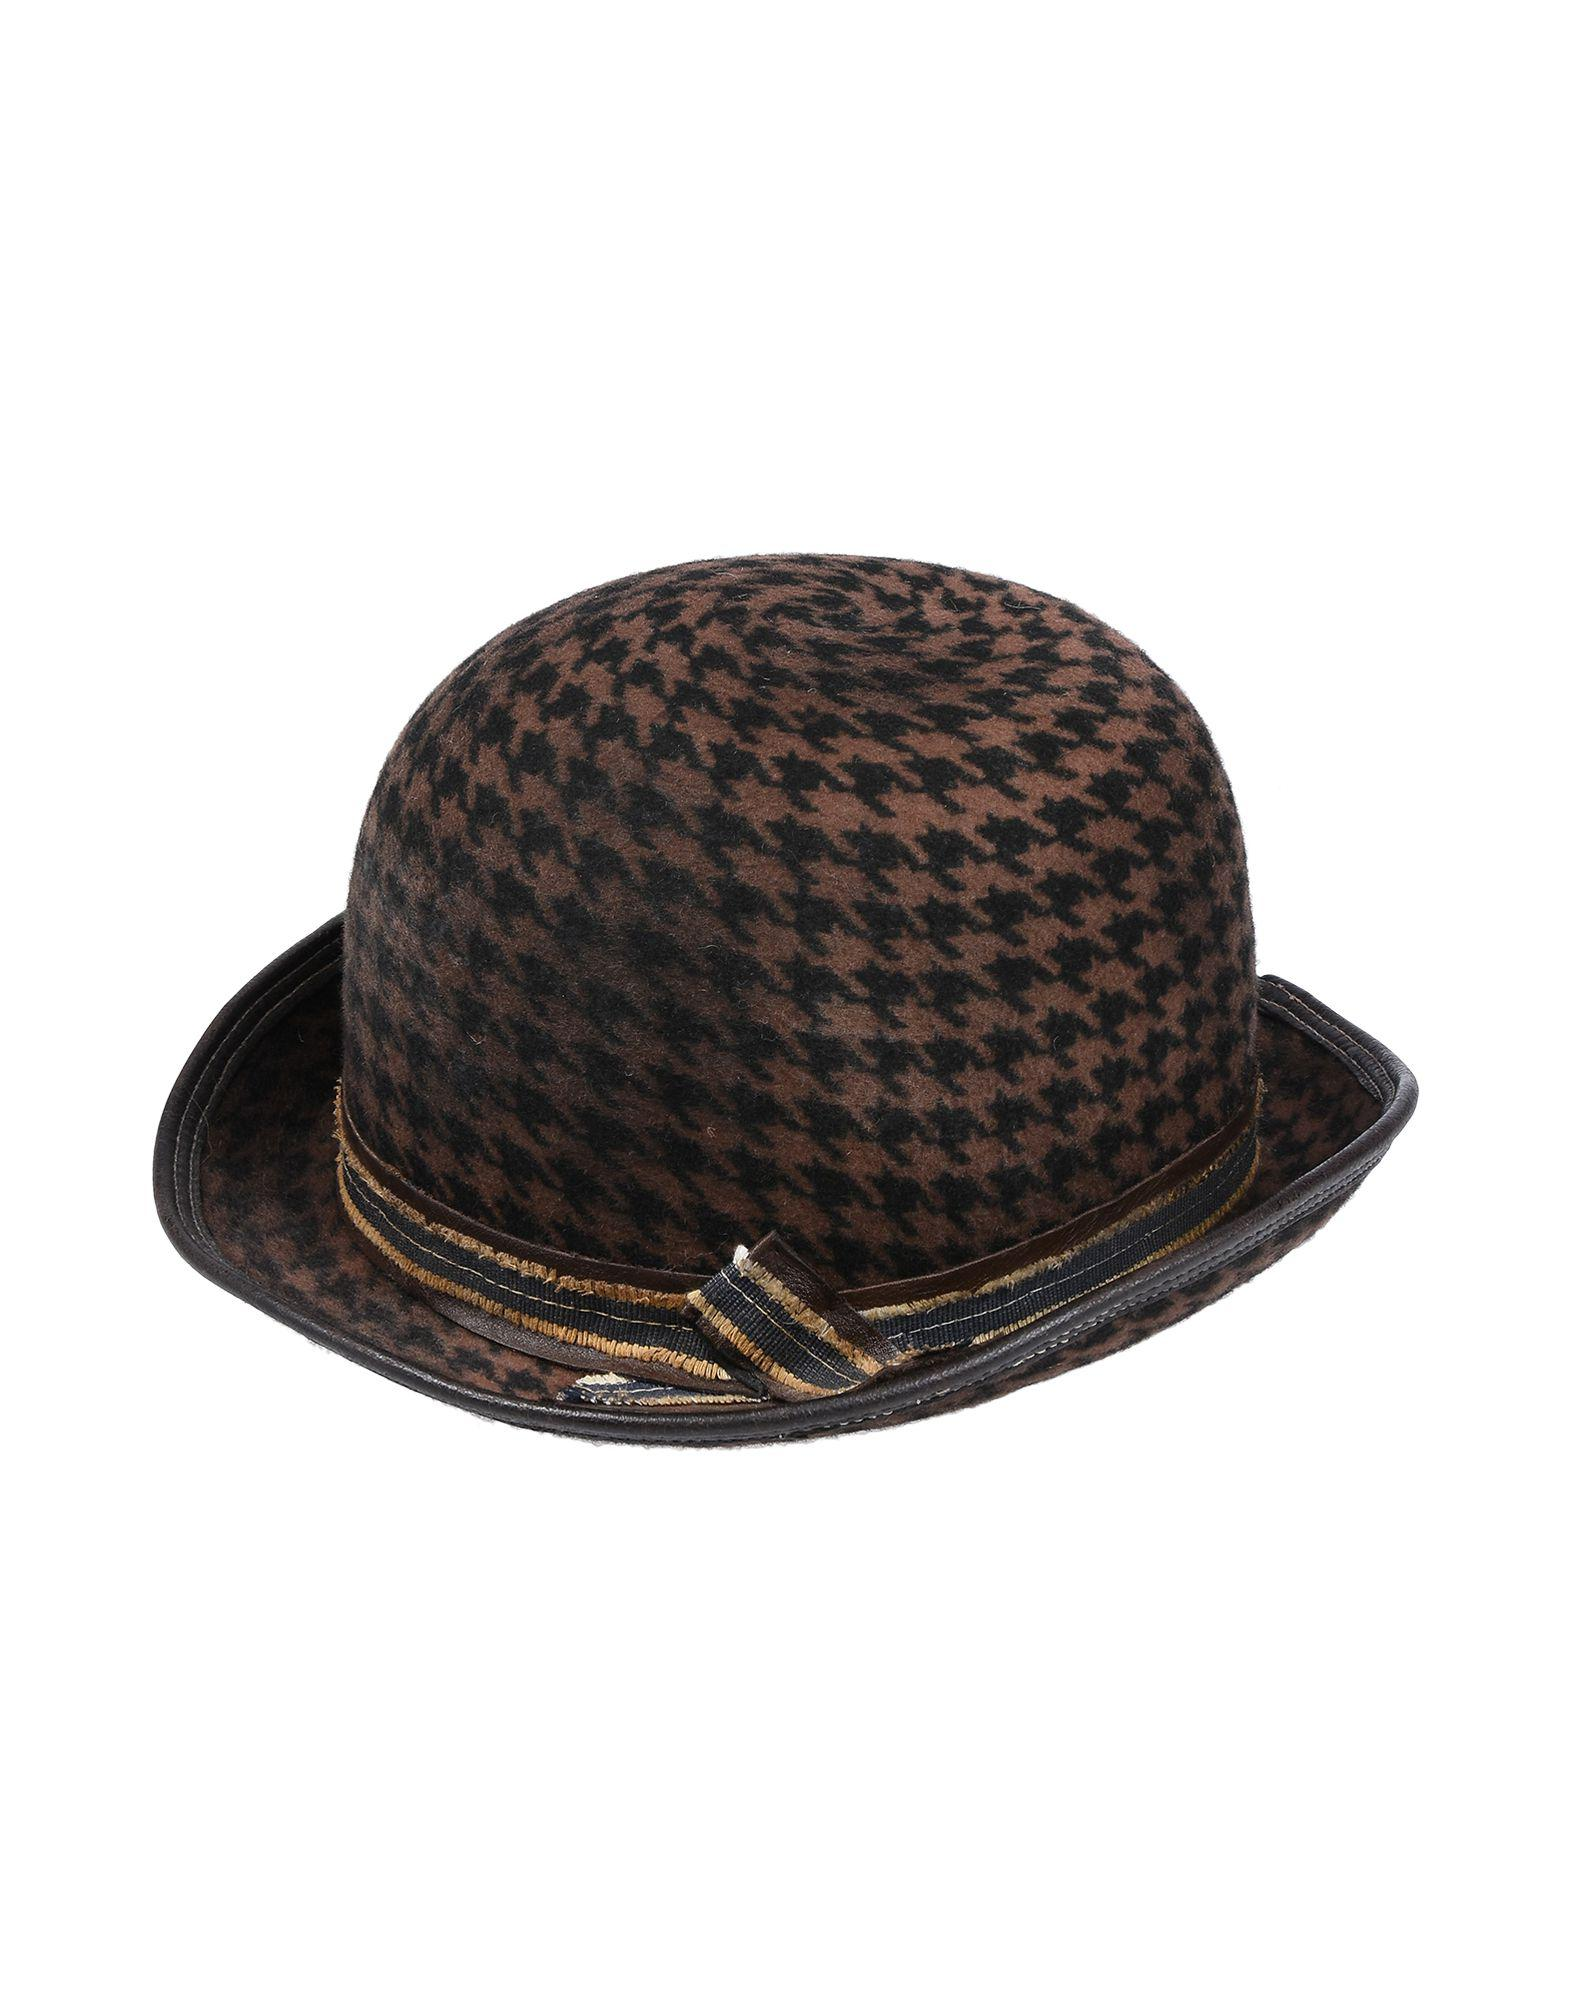 Lyst - Move Officine Del Cappello Hat in Brown e85c1bb18ef7